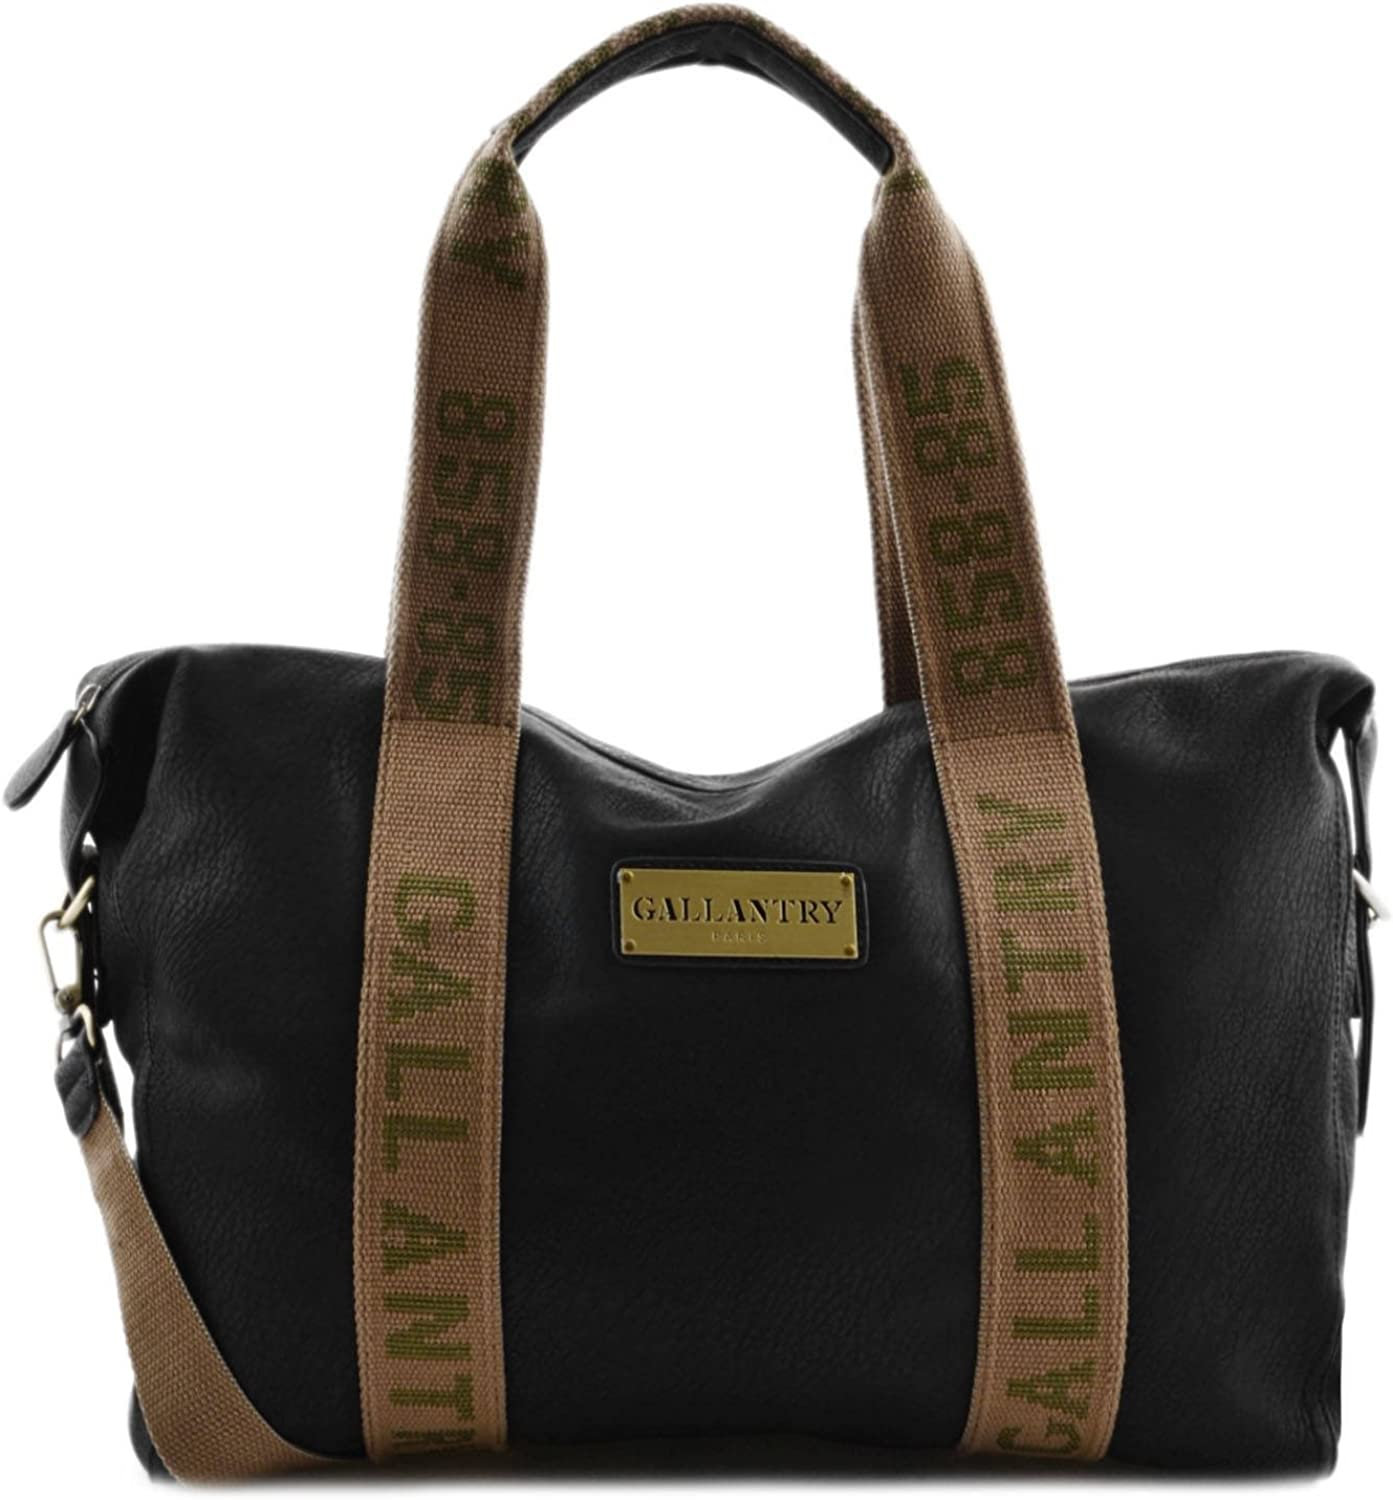 Noir Gallantry-Sac porte epaule a4 army